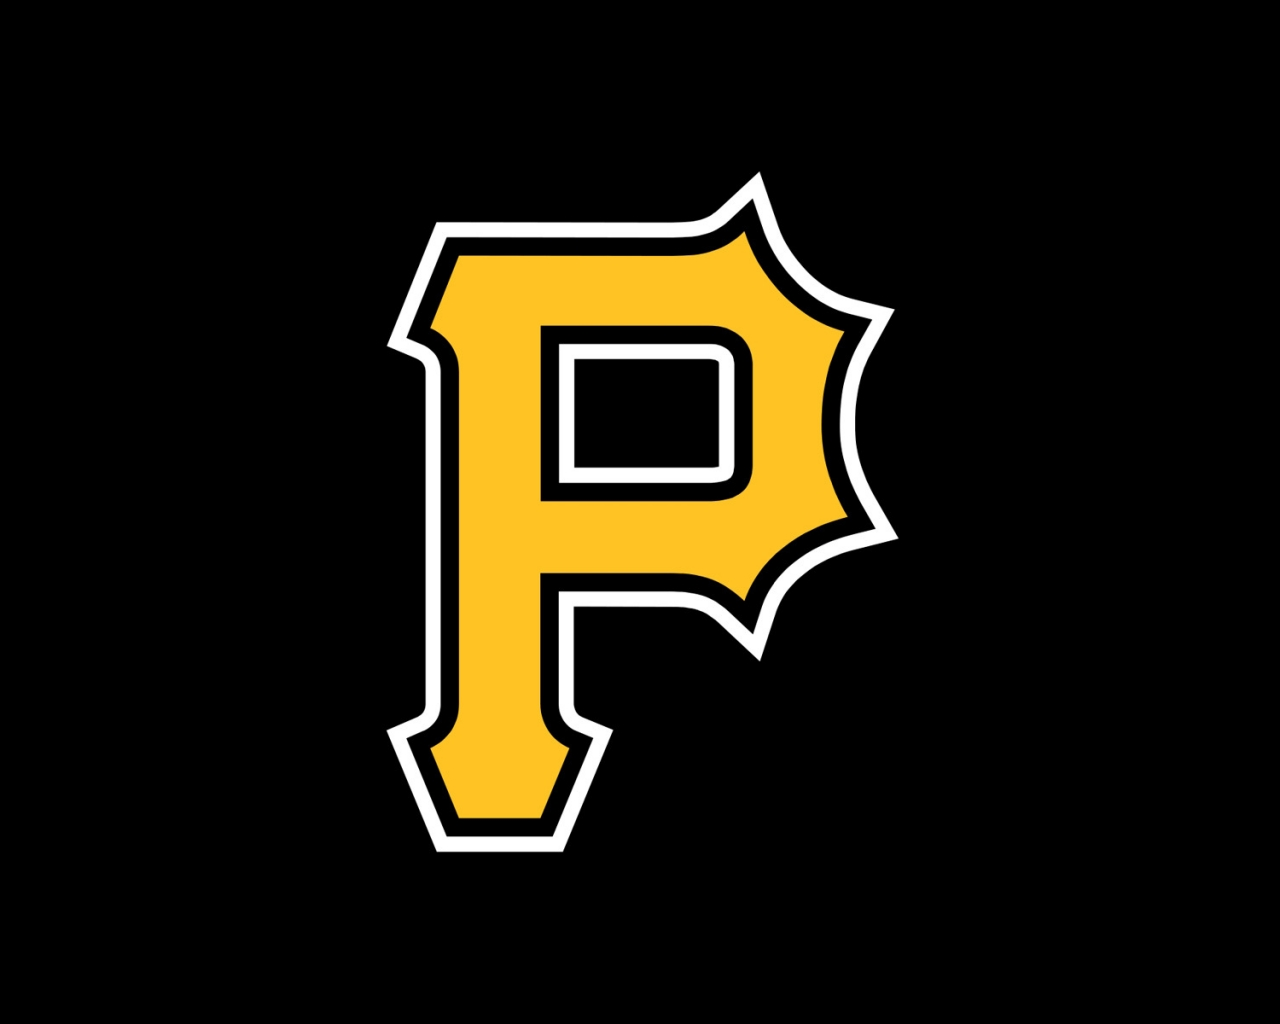 Pittsburgh Pirates Logo HD Desktop Wallpaper Background download 1280x1024